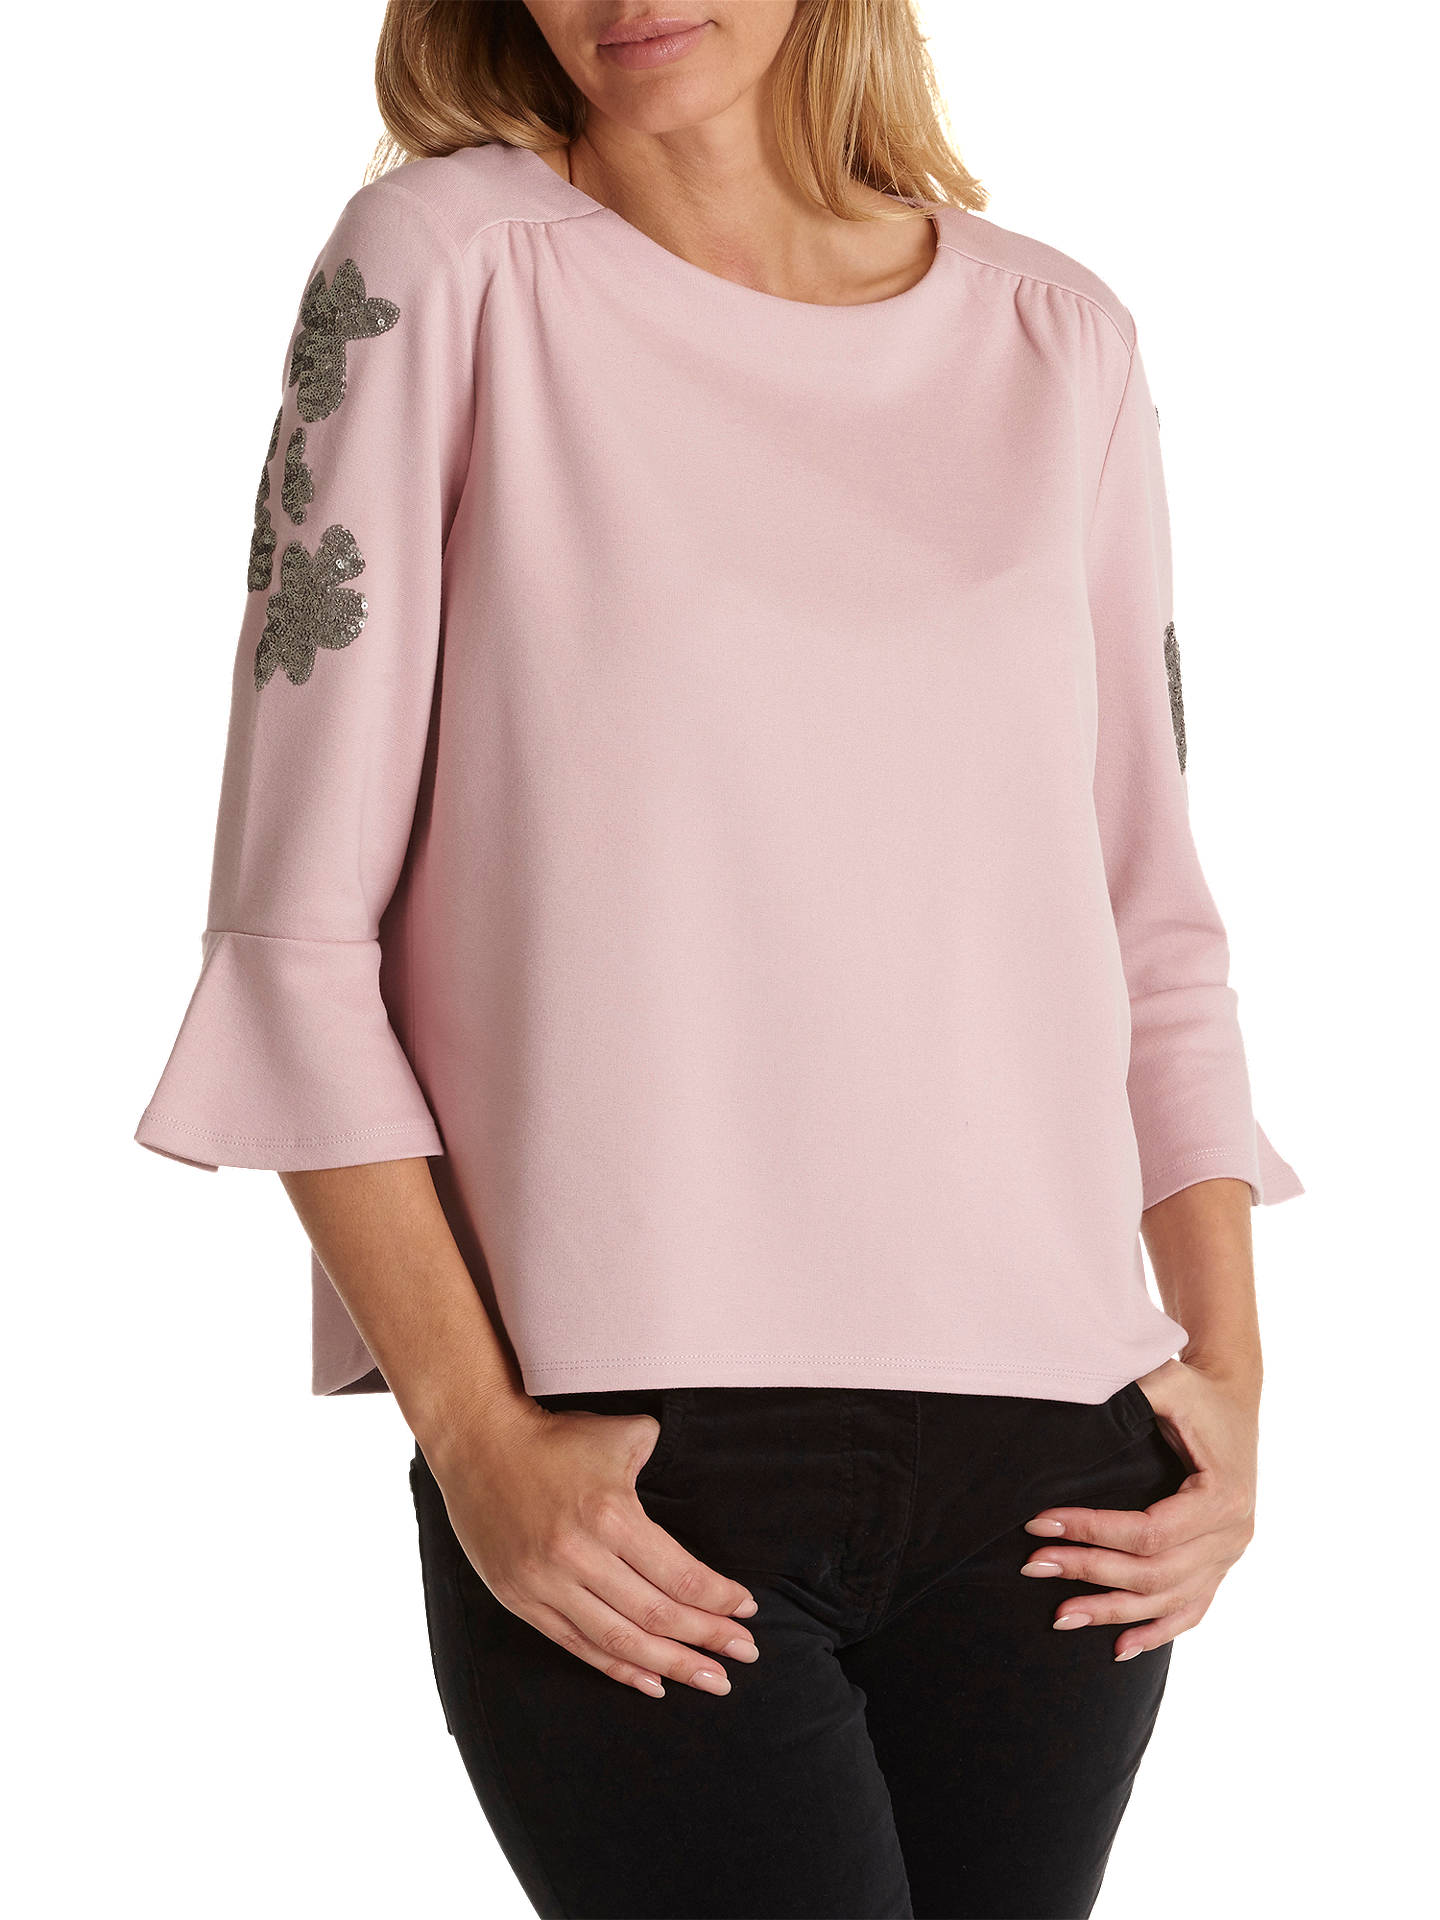 BuyBetty Barclay Embellished Sleeve Top, Pink, 10 Online at johnlewis.com  ... 7cd7310dd1